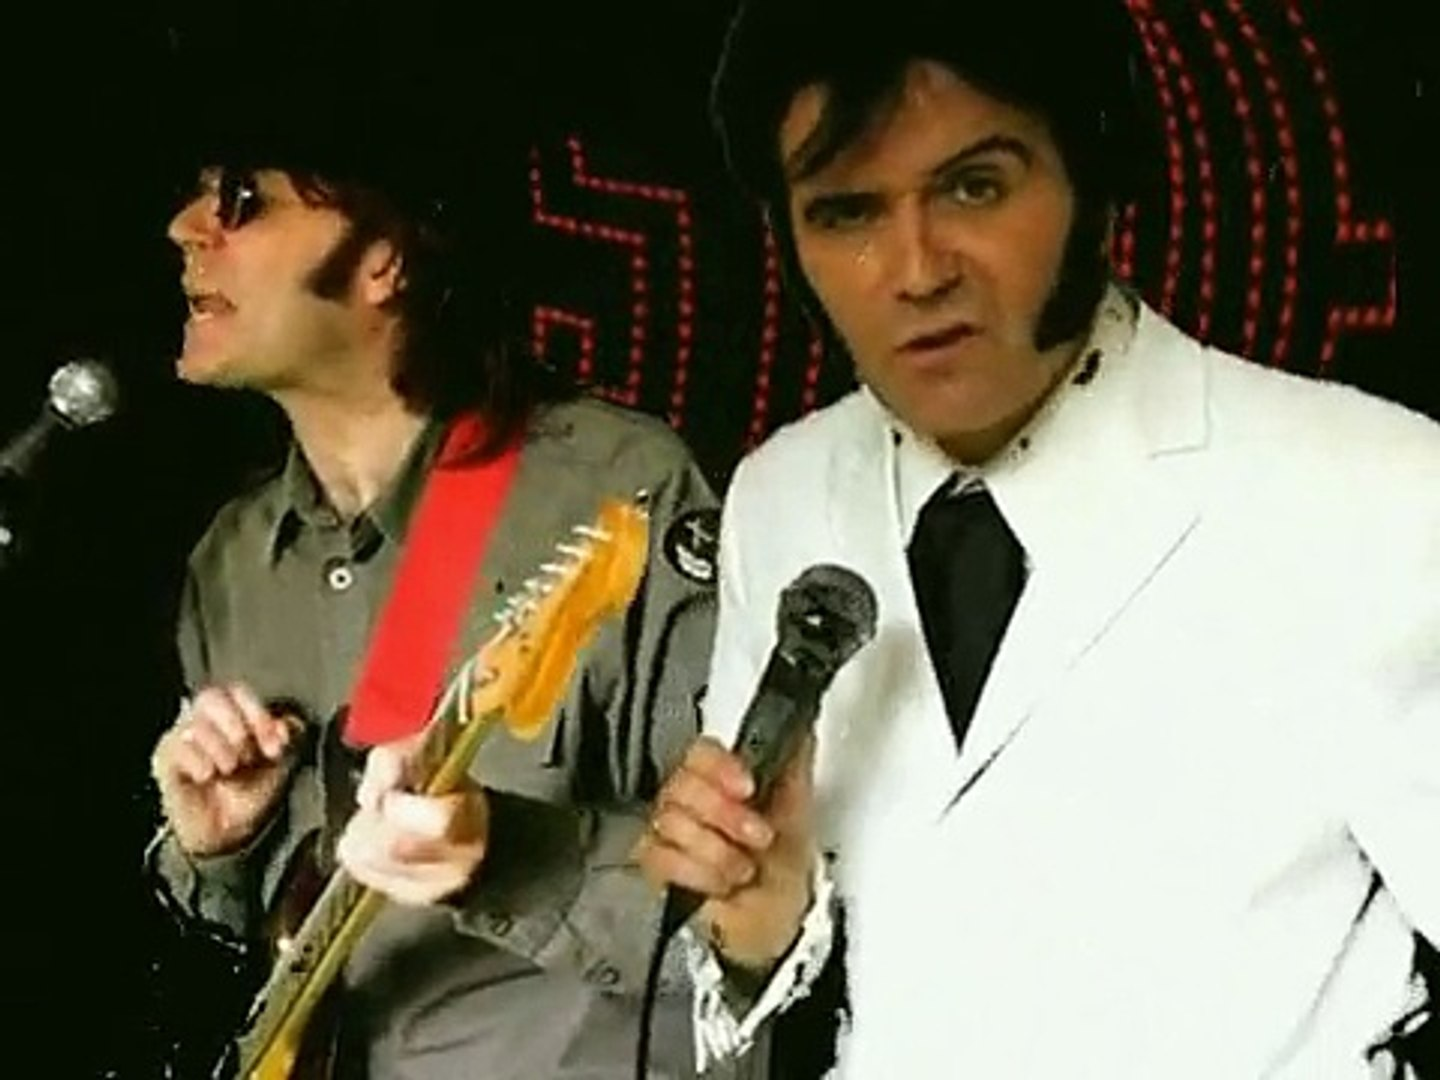 Elvis Presley and John Lennon LIVE!!